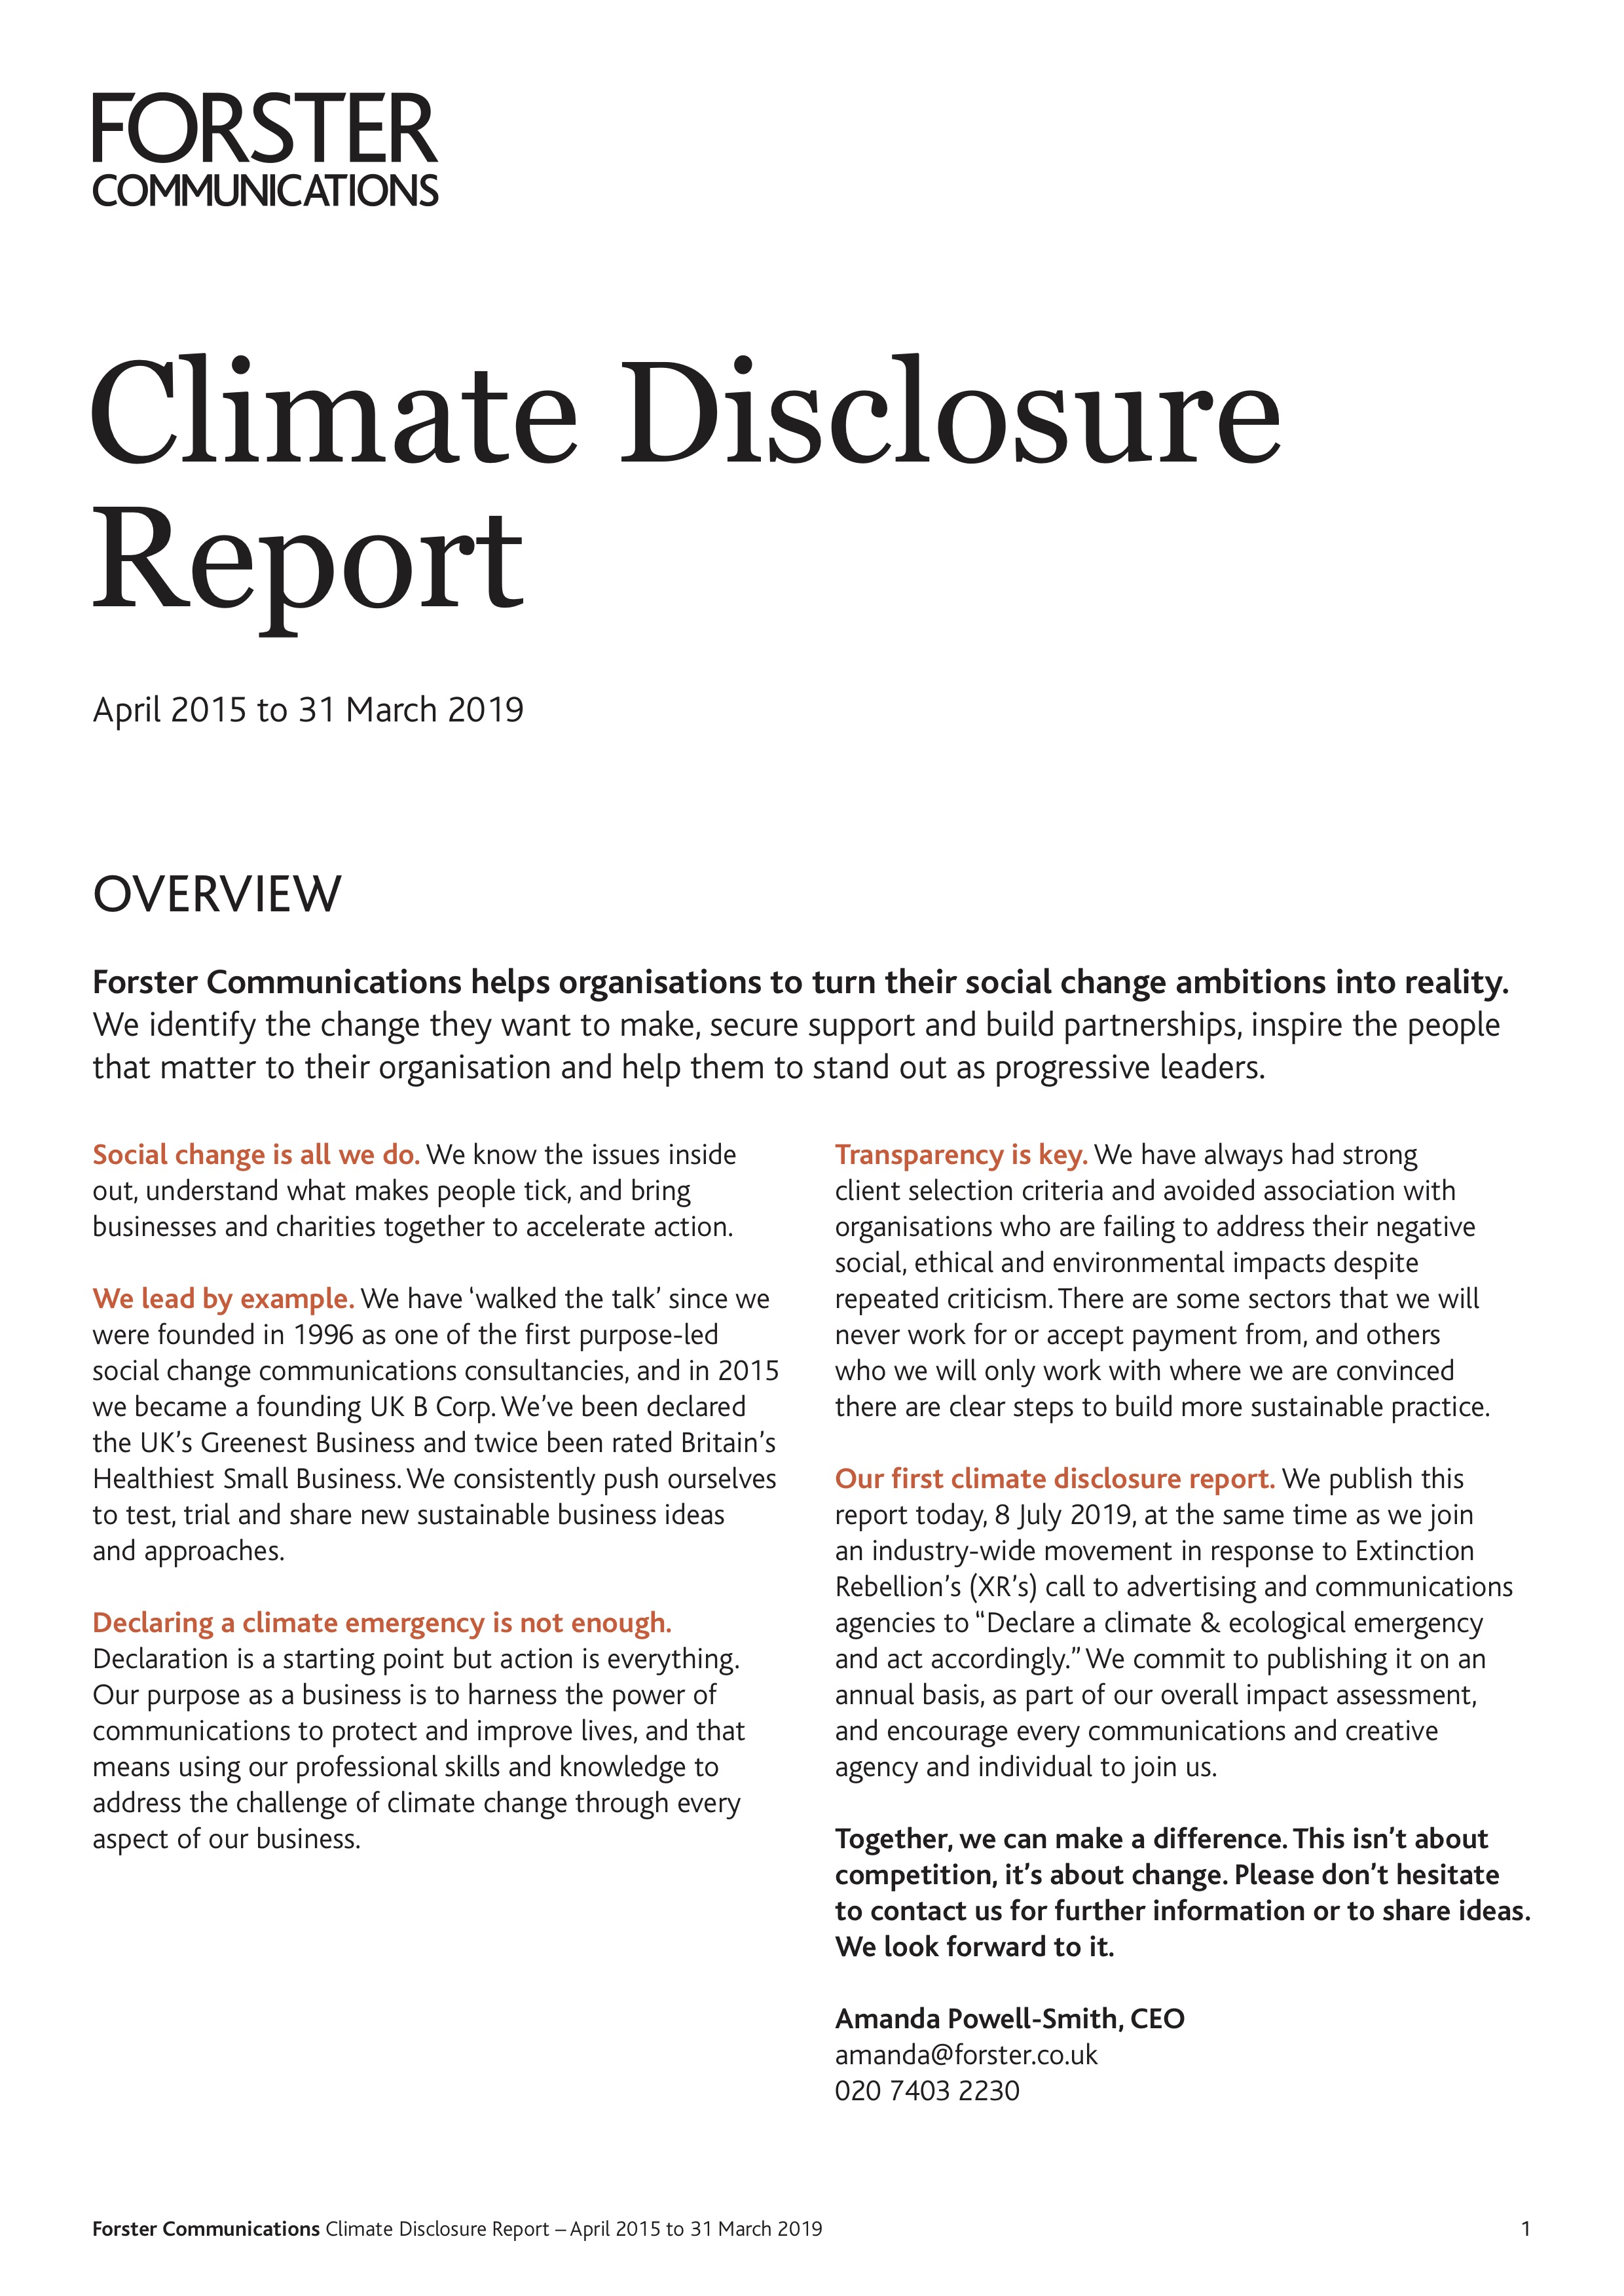 Forster Climate Disclosure Report-April 2015 to 31 March 2019.jpg